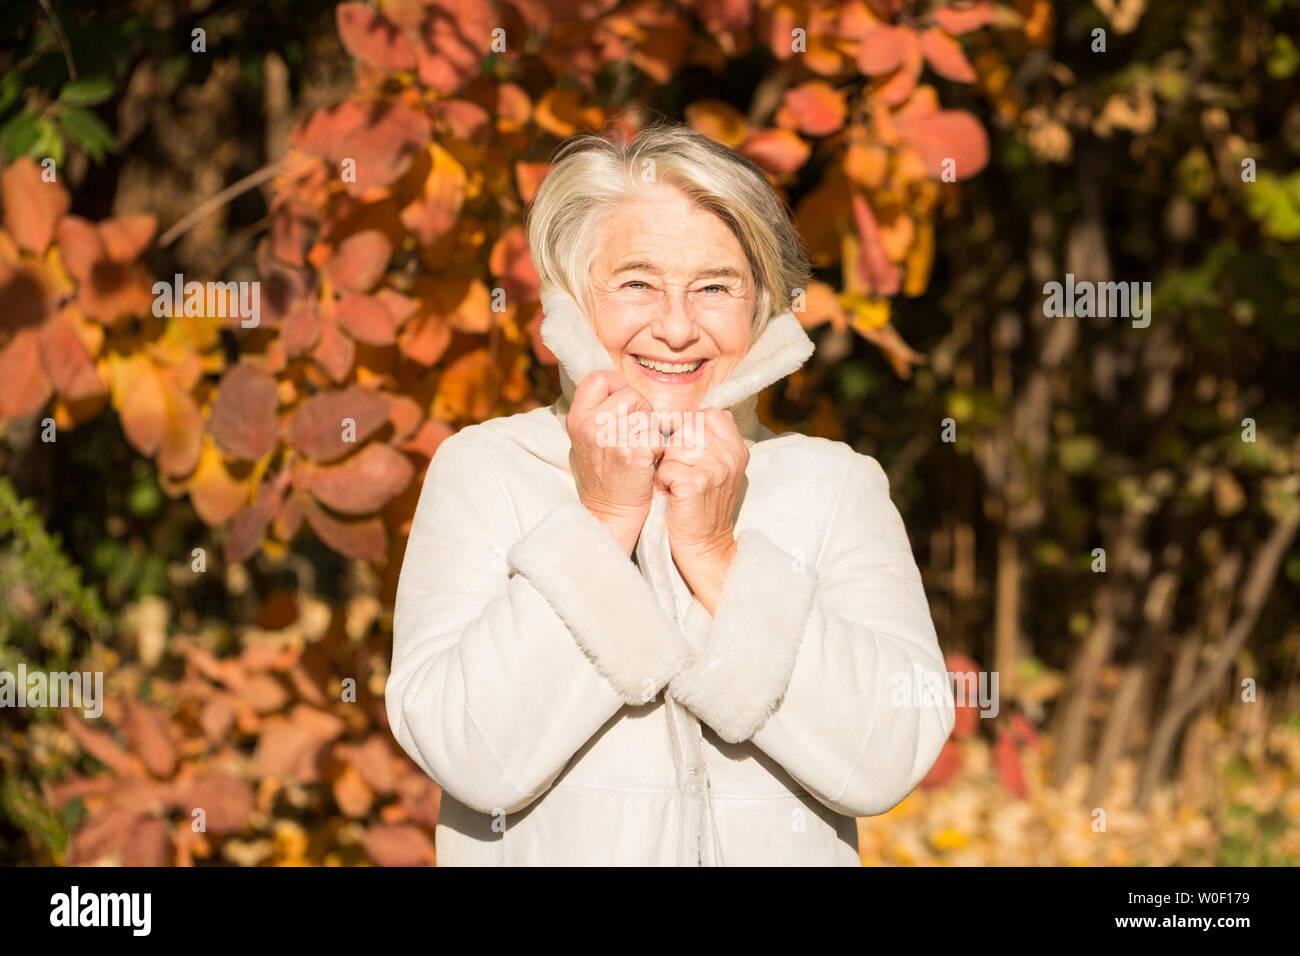 Sunny portrait of a pretty smiling grandma holding his coat collar with his hands in nature in autumnal colors. - Stock Image